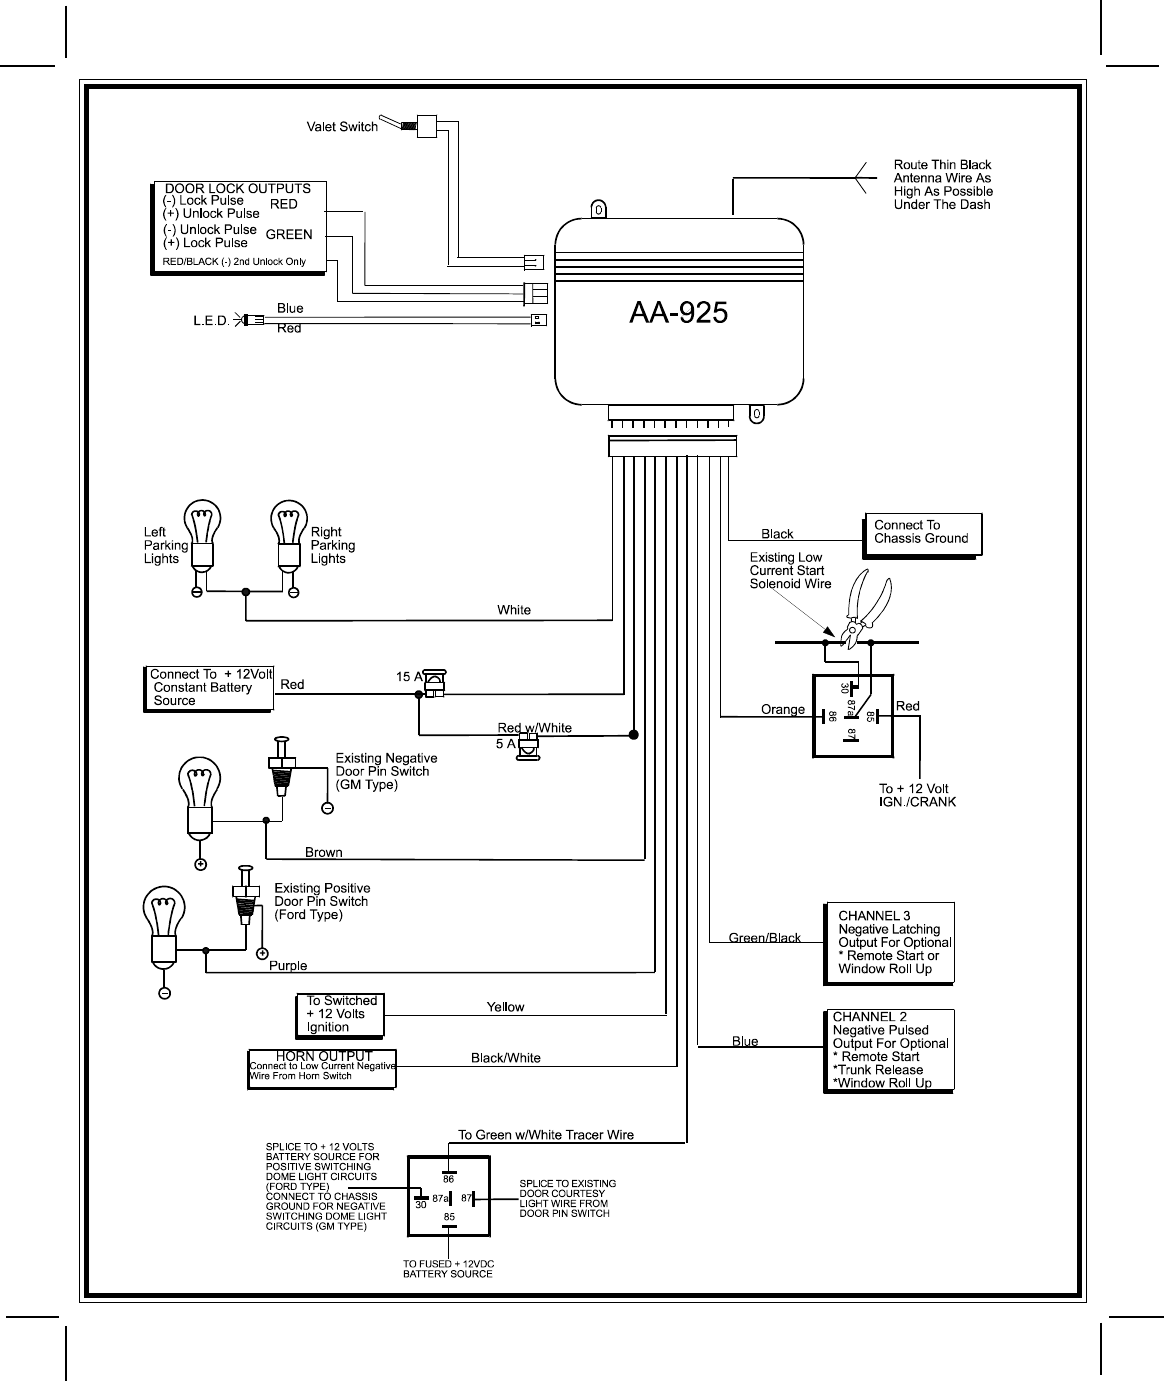 Wiring Diagram For Prestige Car Alarm